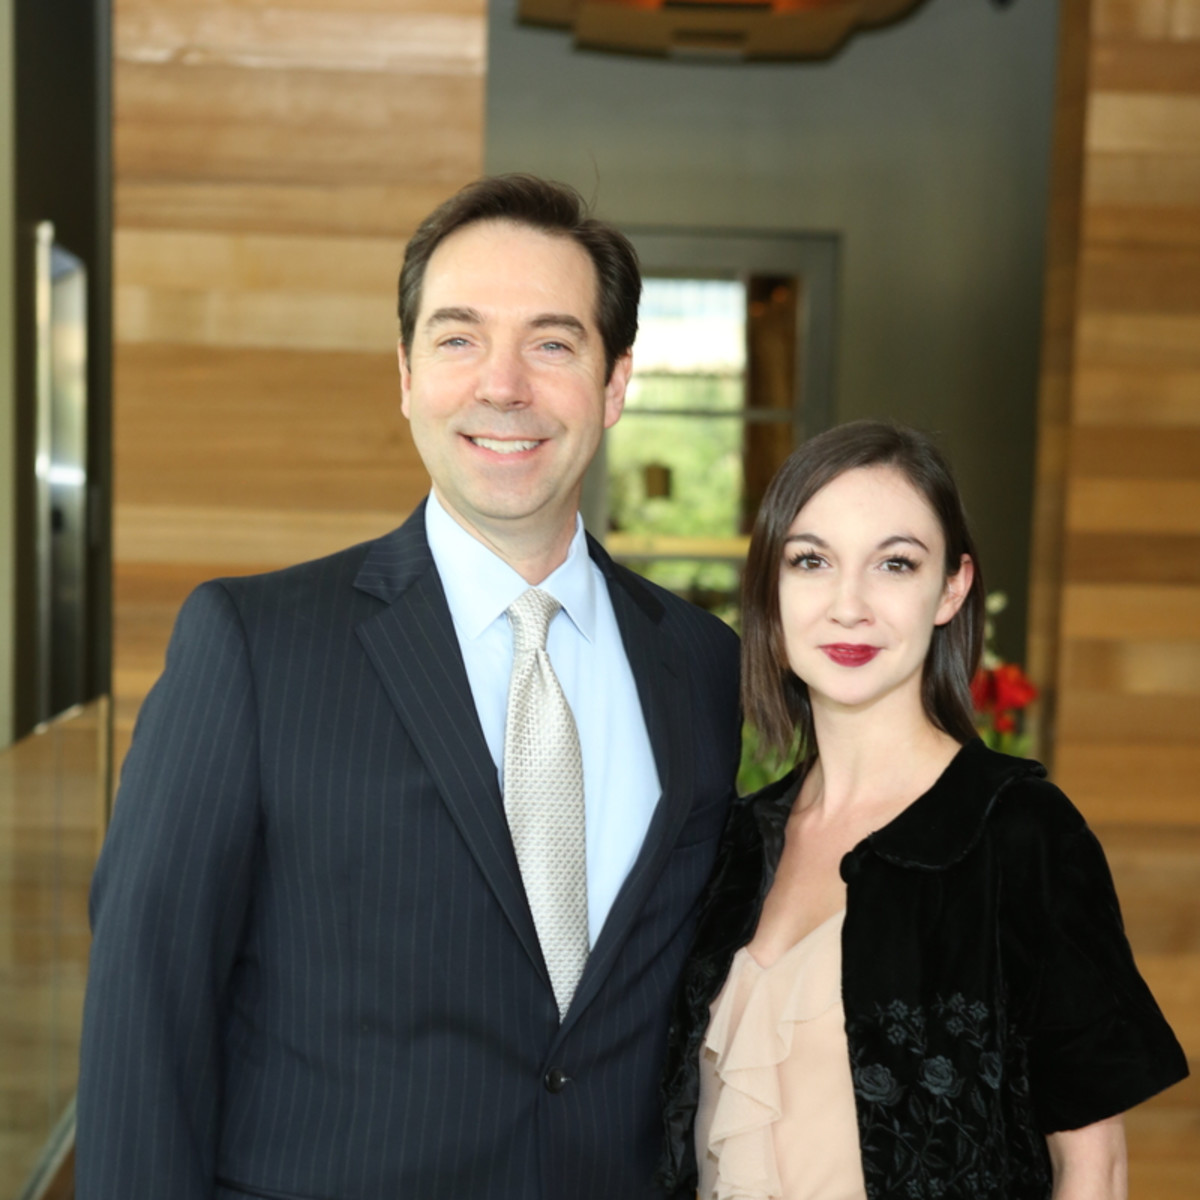 Houston Ballet Barre dinner, April 2016 Jim Nelson, Emily Bowen